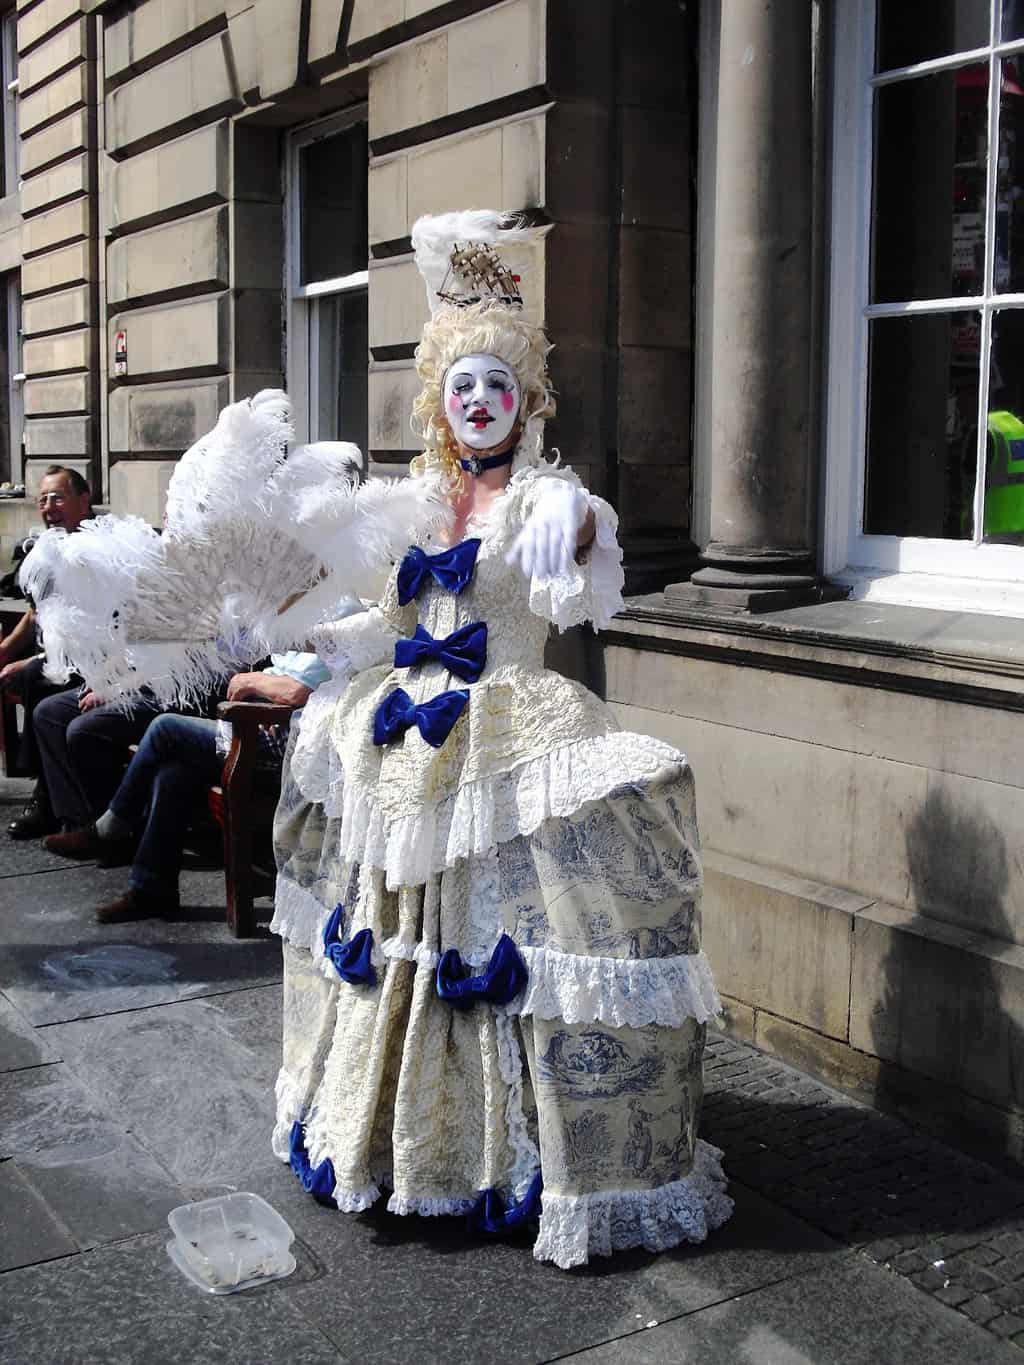 An actor on the streets of Edinburgh dressed in a dress with a wig